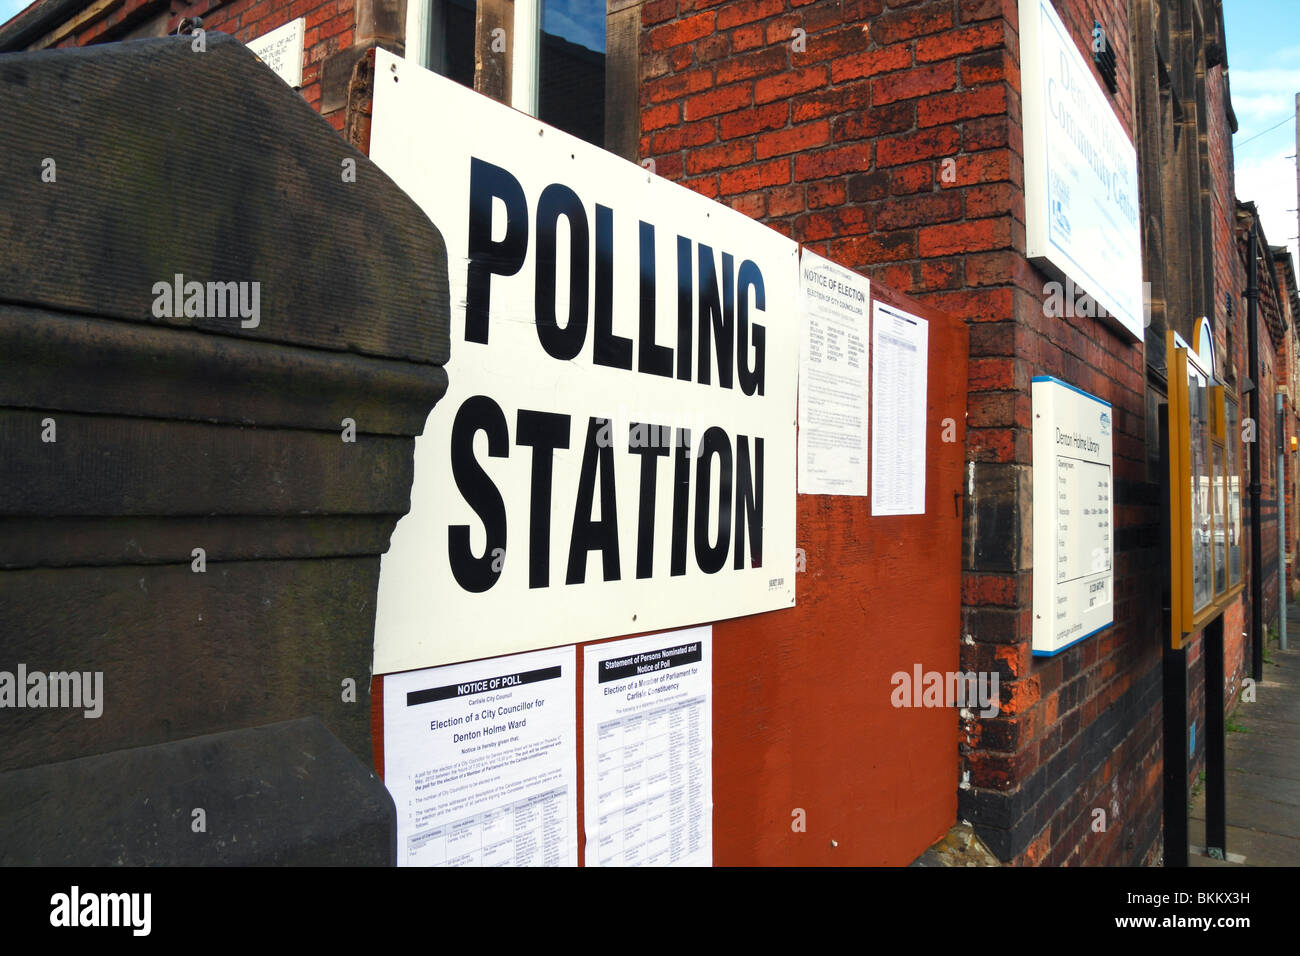 Polling station sign with notices outside a community centre in the UK - Stock Image